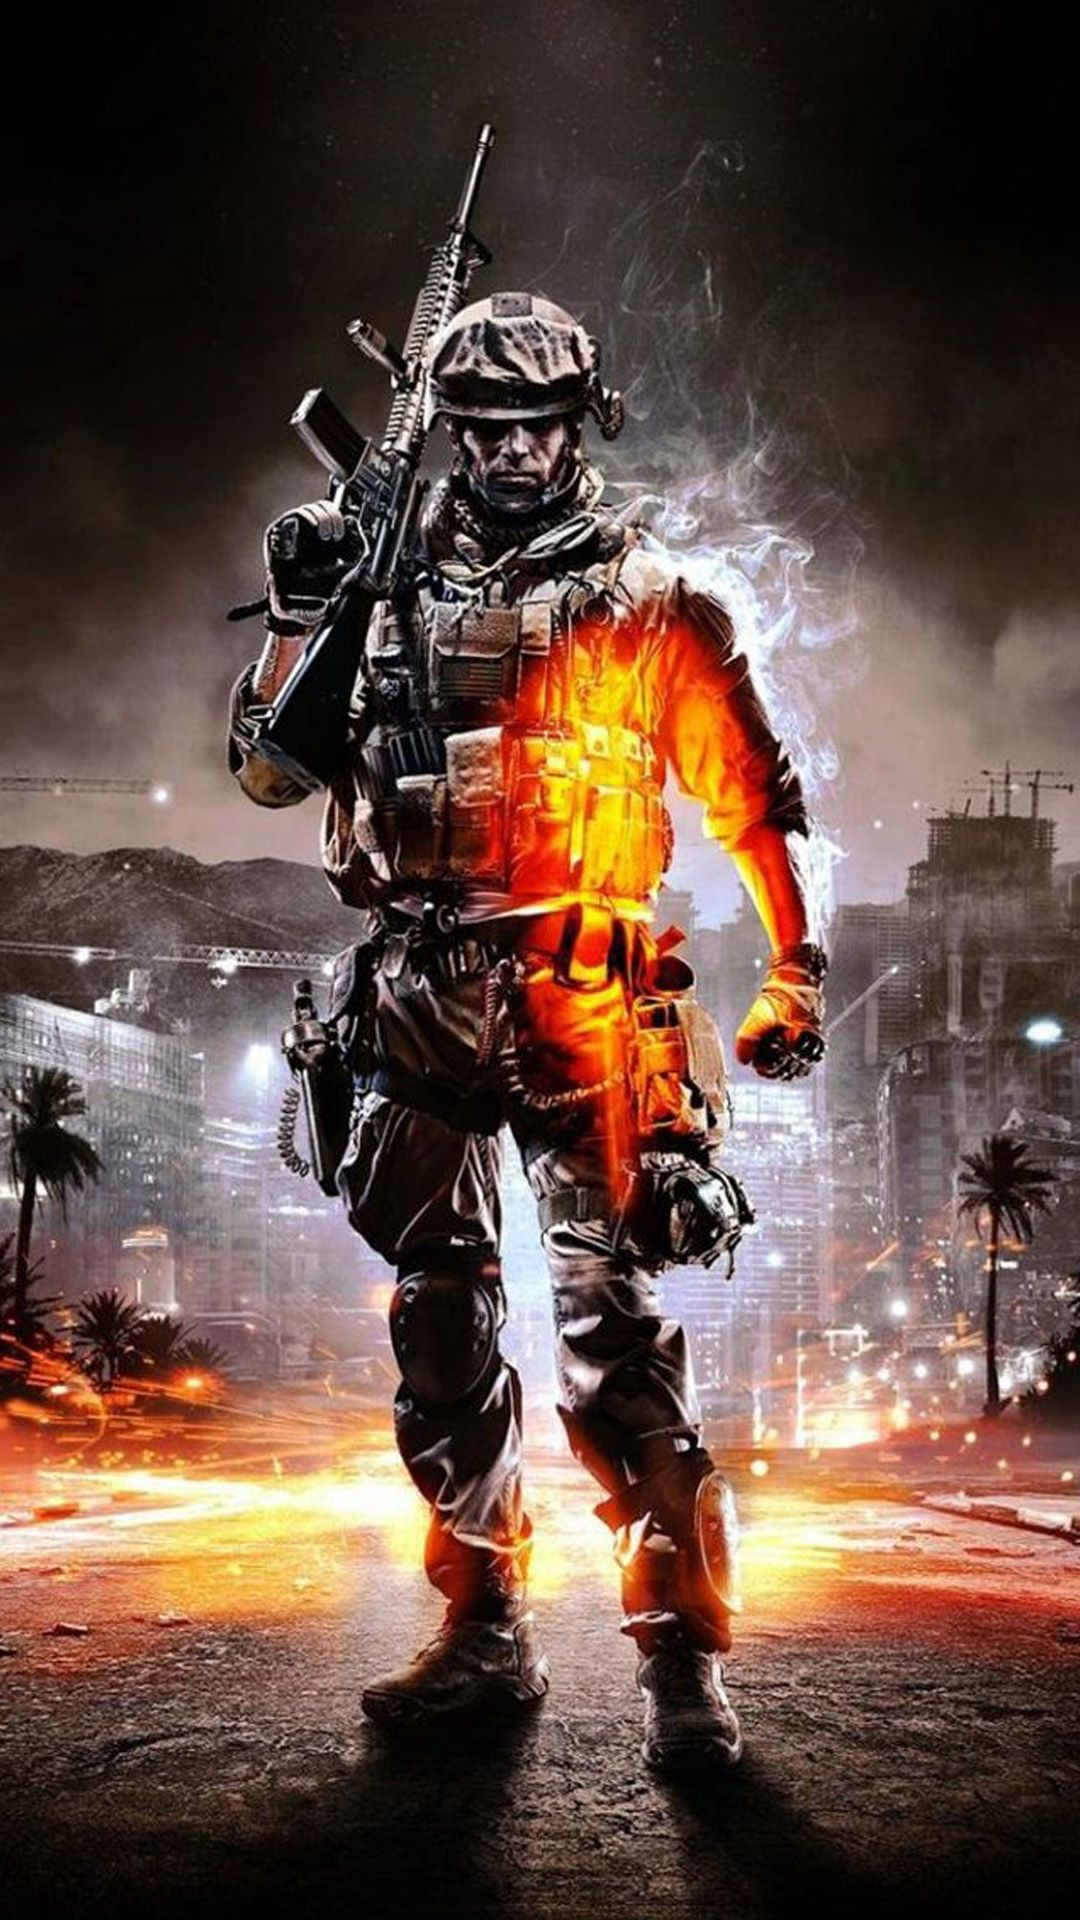 Image Result For Call Of Duty Ghosts Mobile Wallpaper Indian